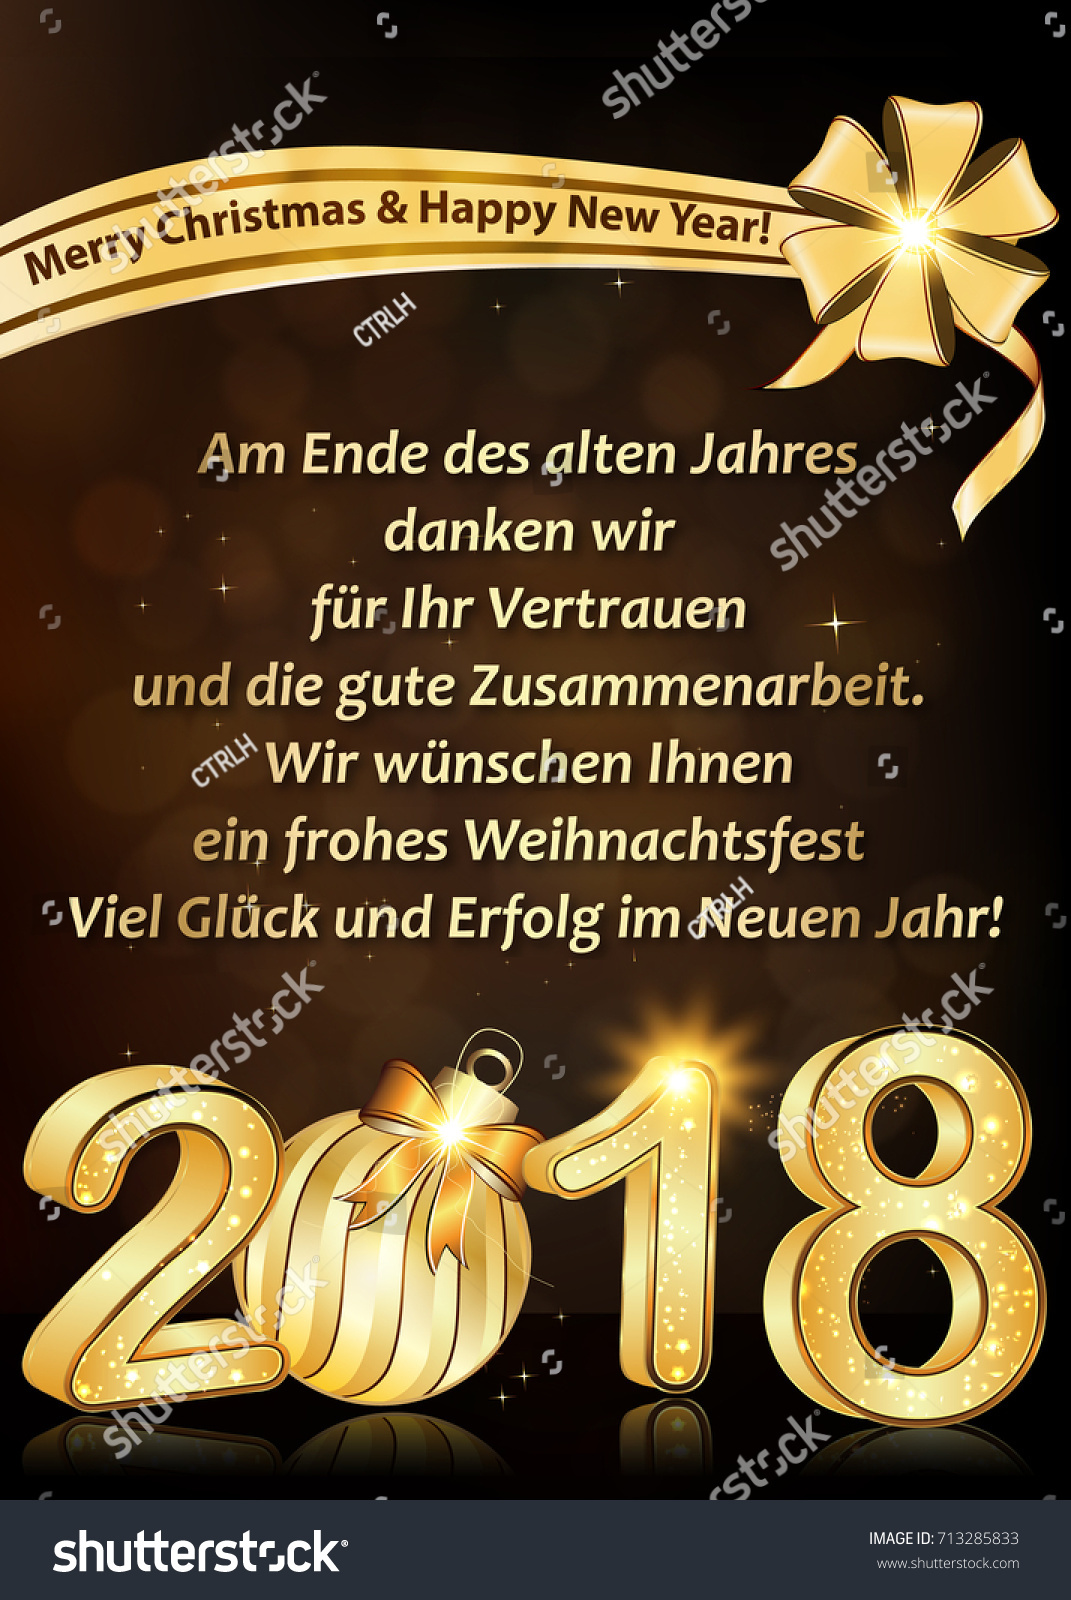 thank you business german greeting card for new year 2018 text translation at the